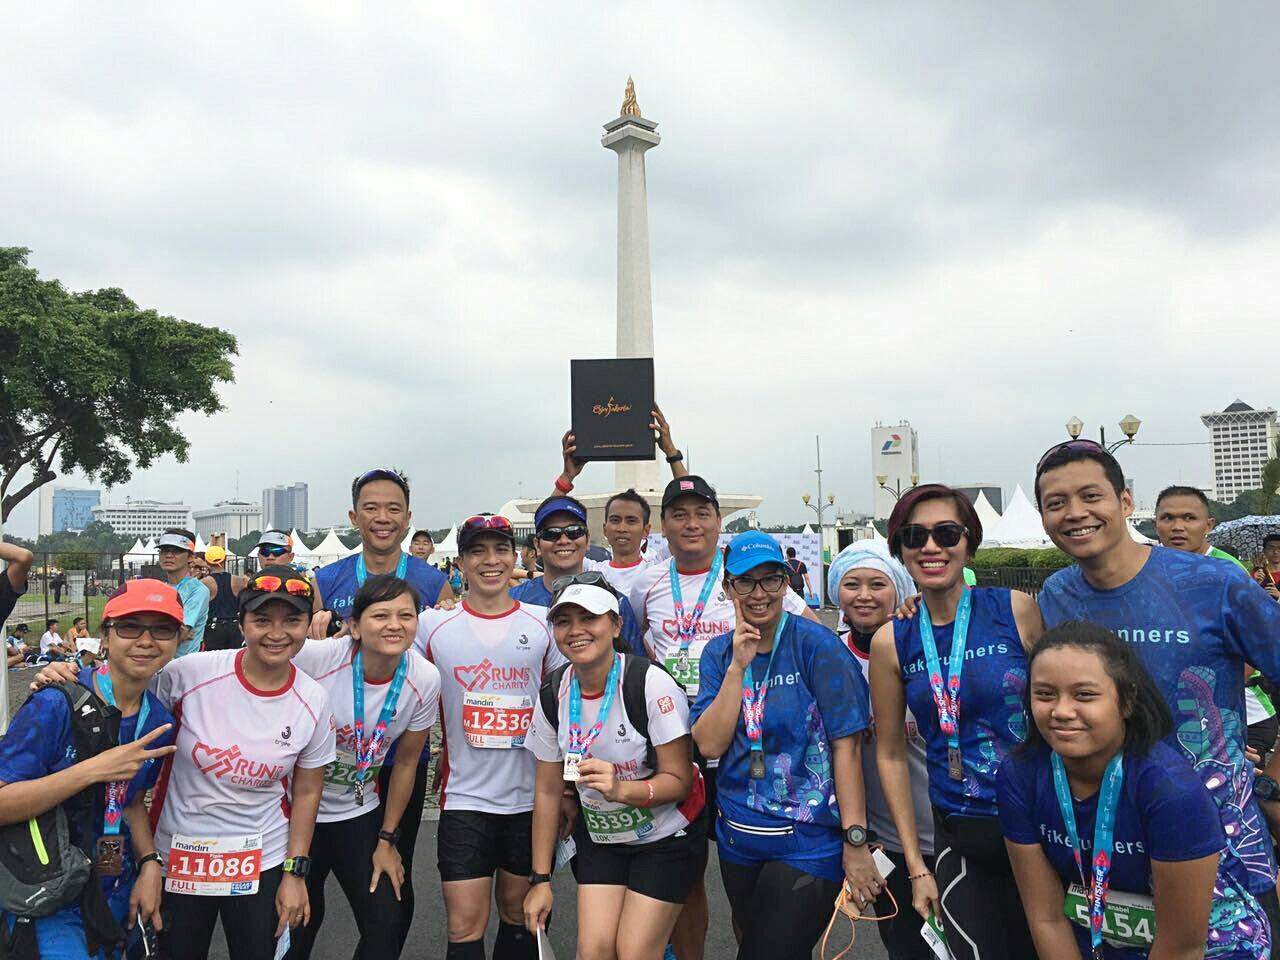 Jakarta Marathon, my third full marathon. I participated as a runner for a movement called Run For Charity, the official charity partner for the event.